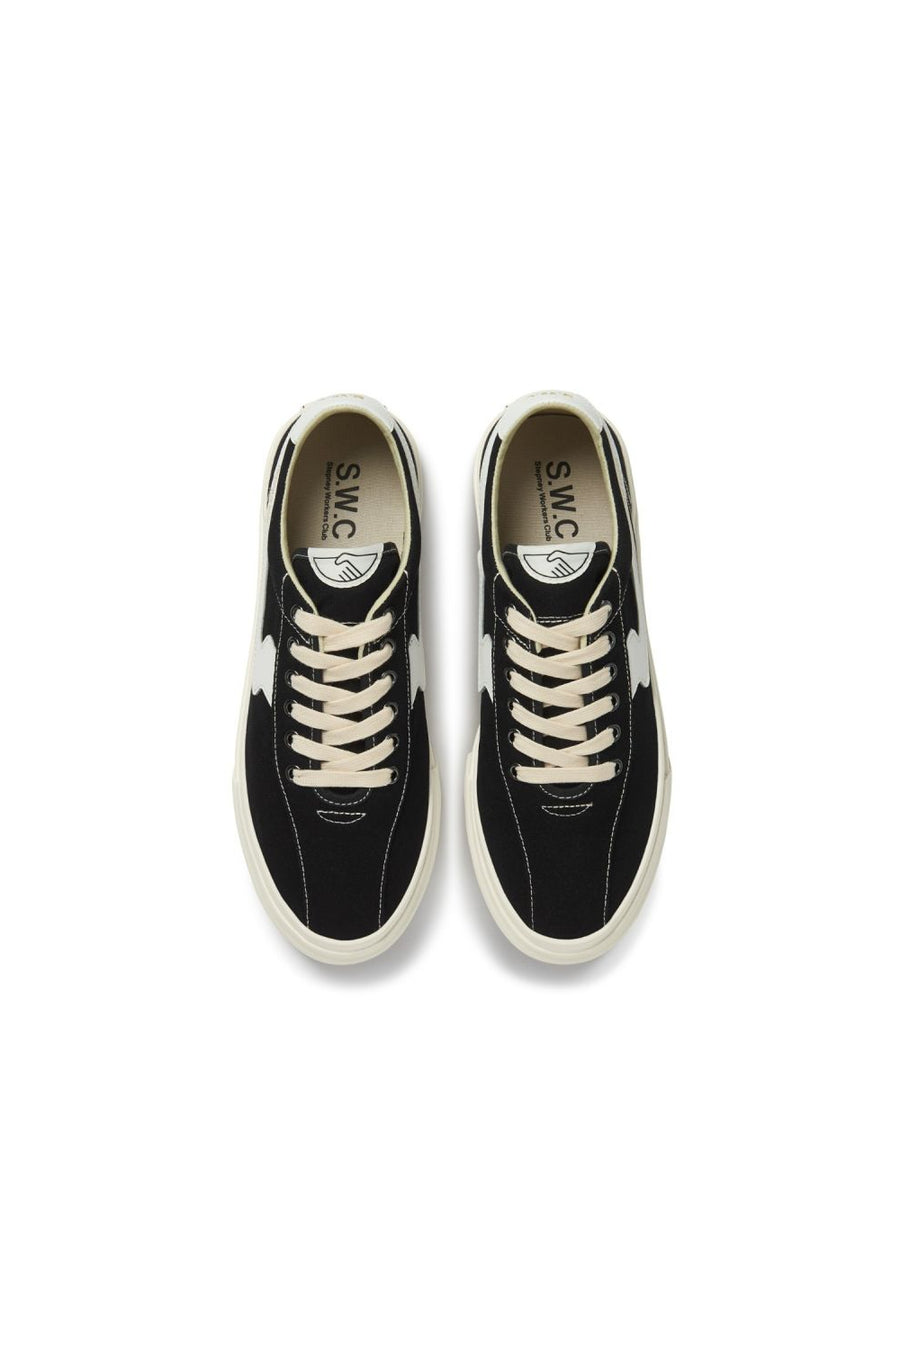 Dellow S Strike Canvas | Black & White | STEPNEY WORKERS CLUB NZ | footwear NZ | Black Box Boutique Auckland | Womens Fashion NZ